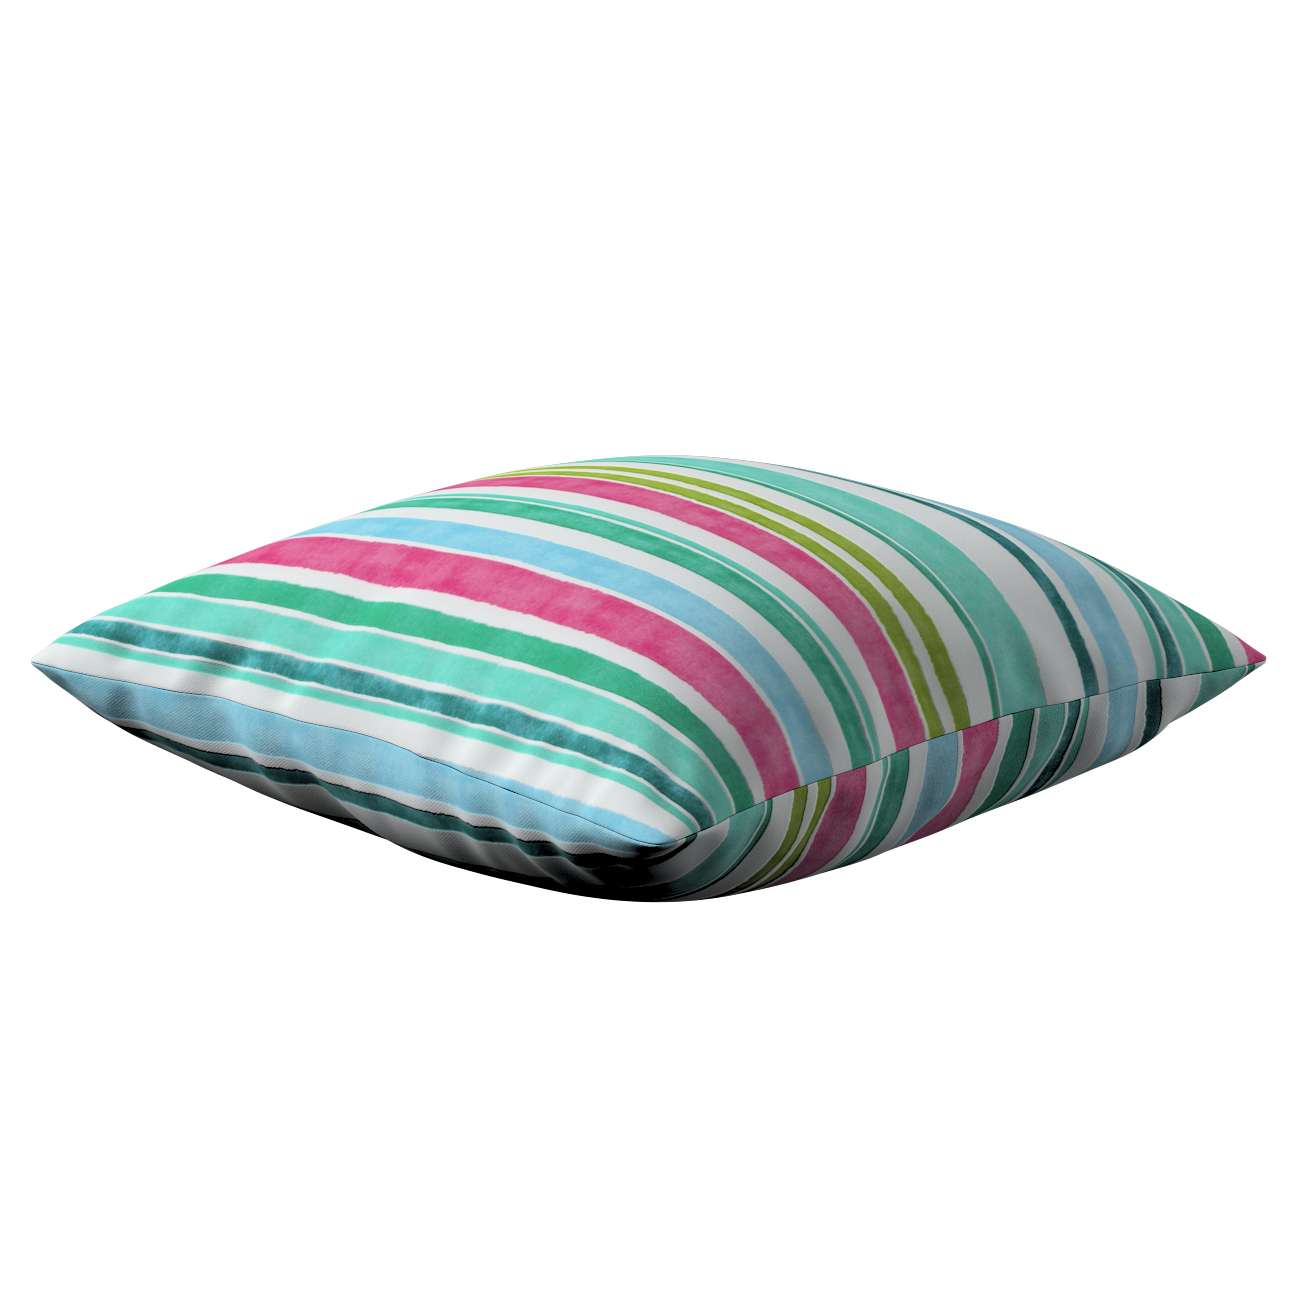 Kinga cushion cover in collection Monet, fabric: 140-03